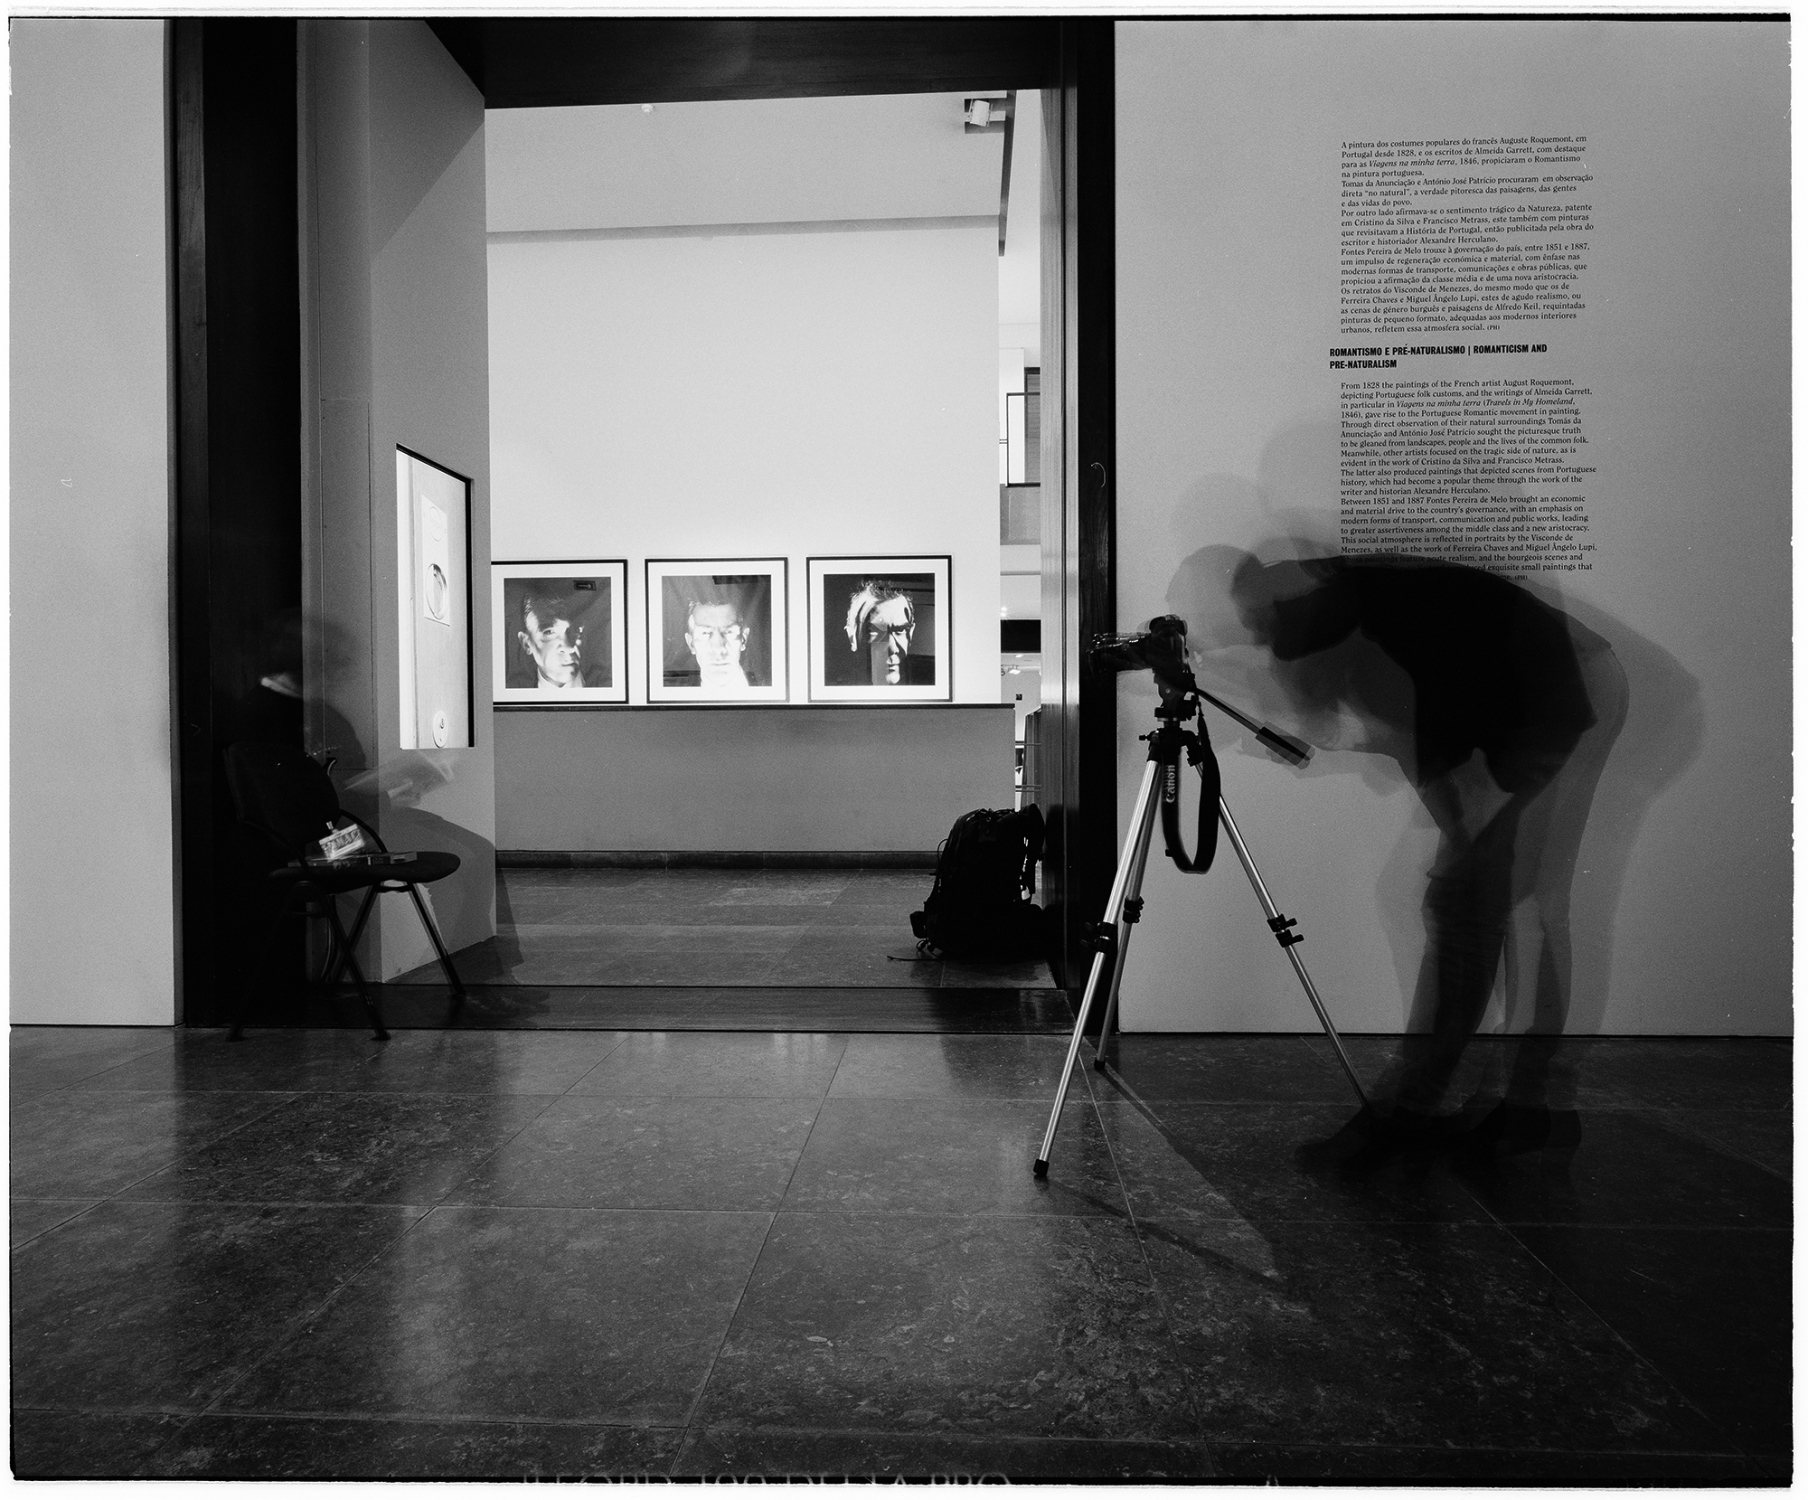 Art and Documentary Photography - Loading r20.jpg